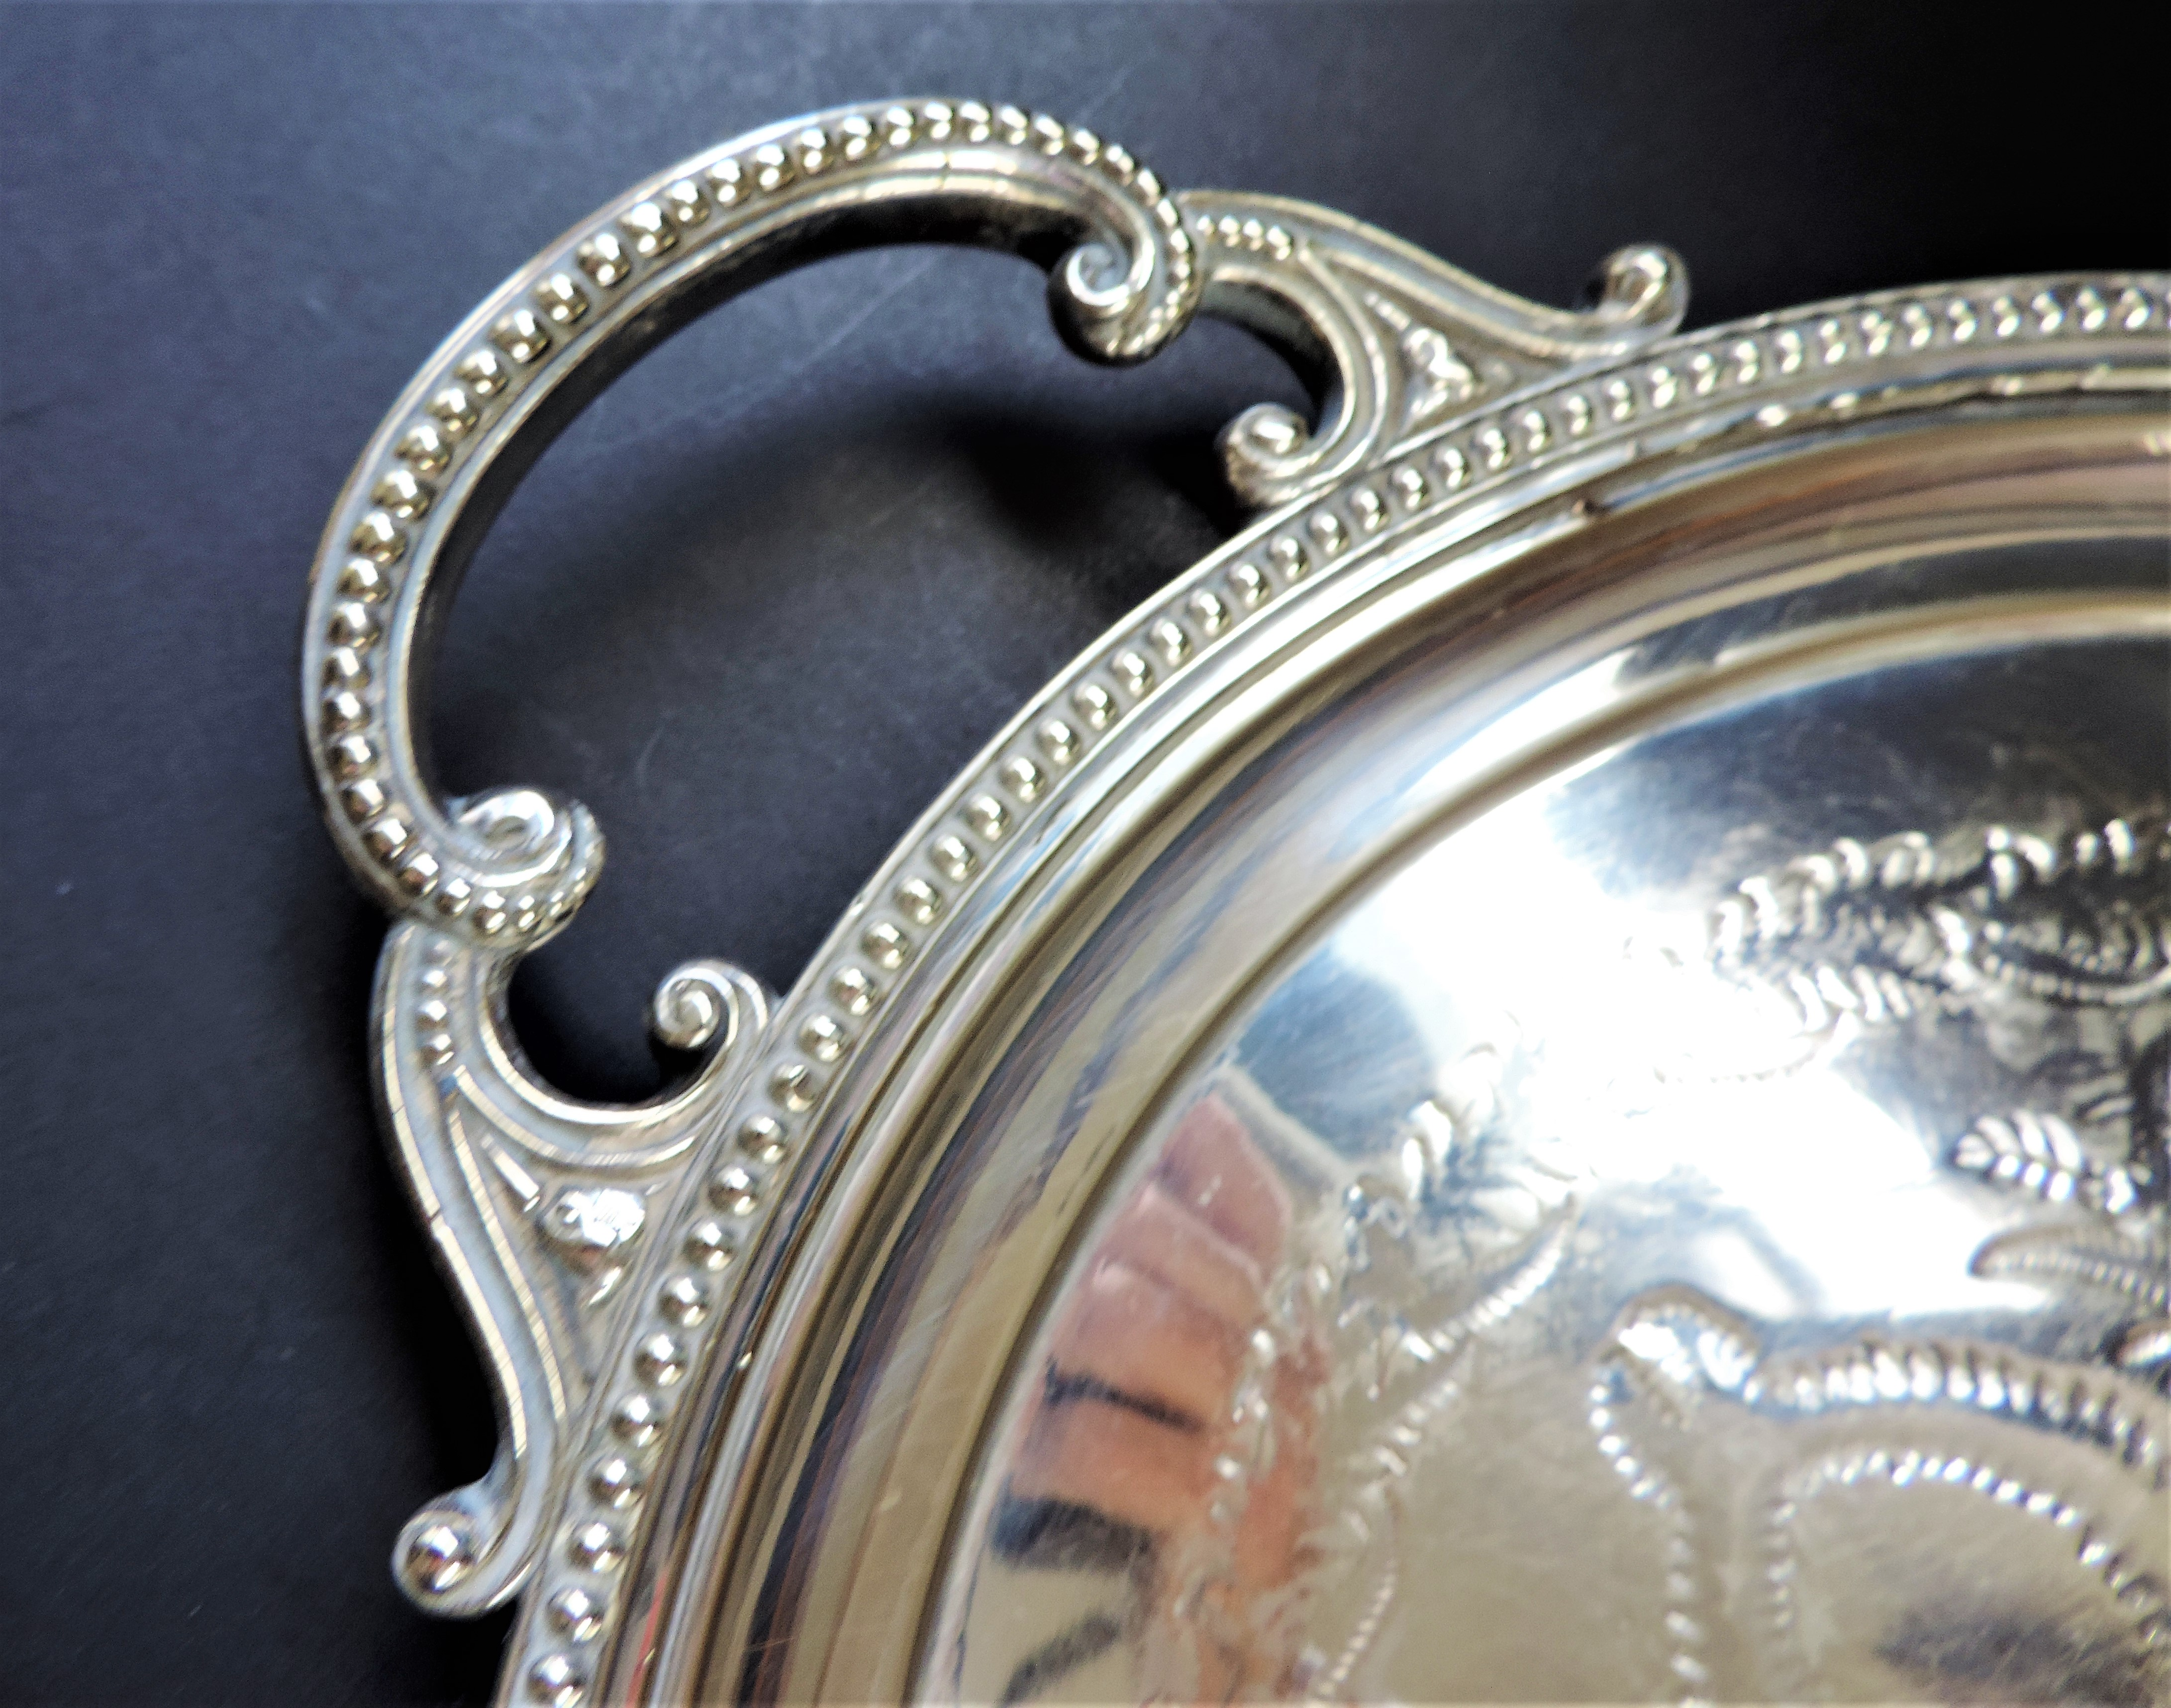 Large Antique Silver Plated Serving Tray 63cm Long - Image 3 of 3